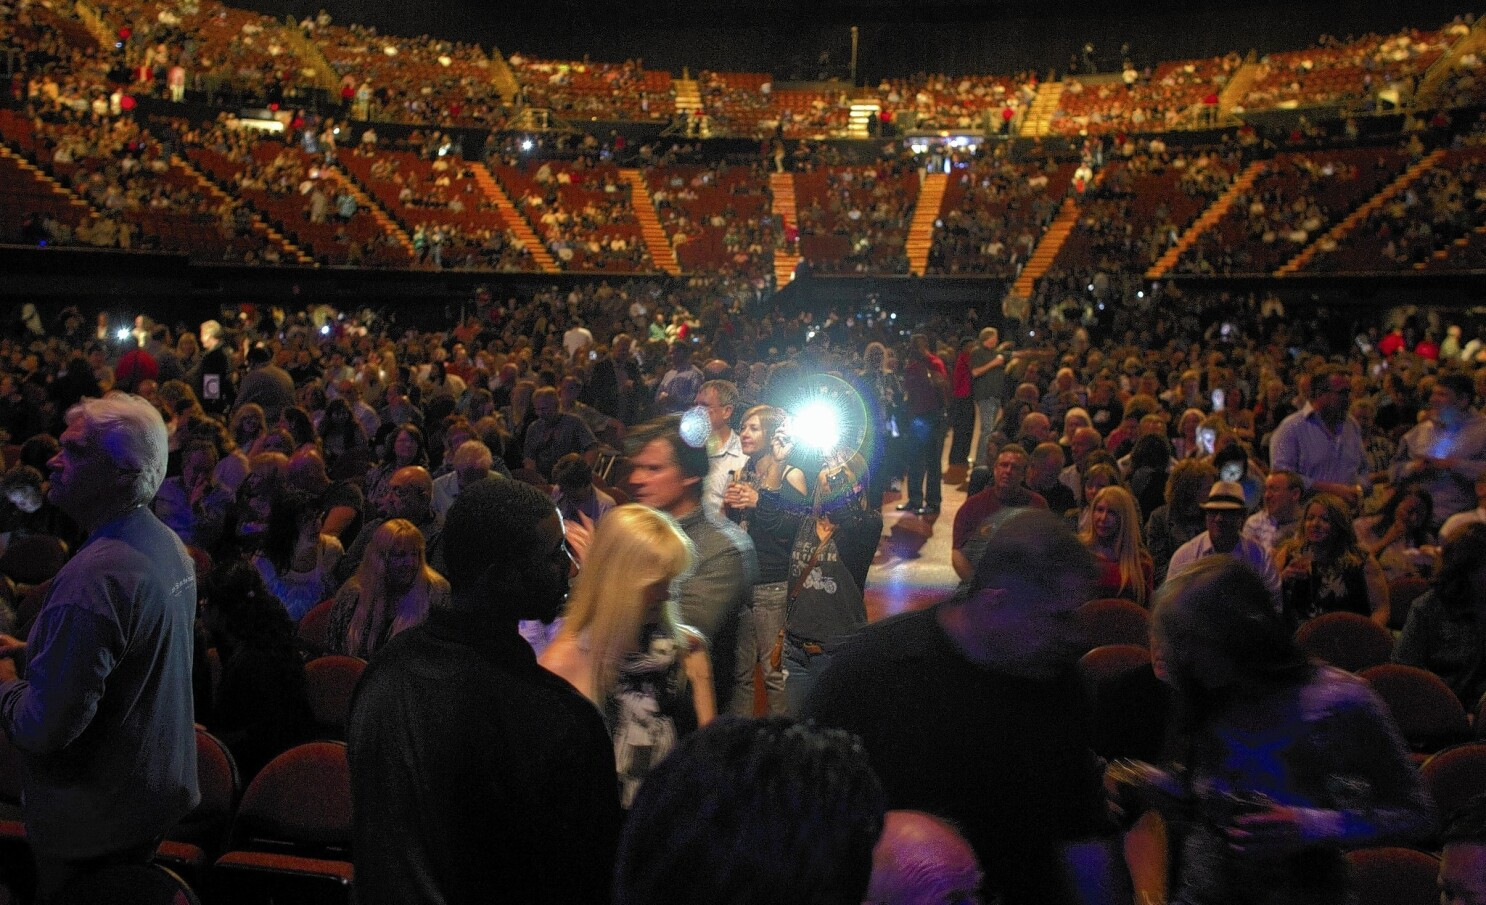 Concertgoer Gets Static From Forum Over Missing Seat Los Angeles Times